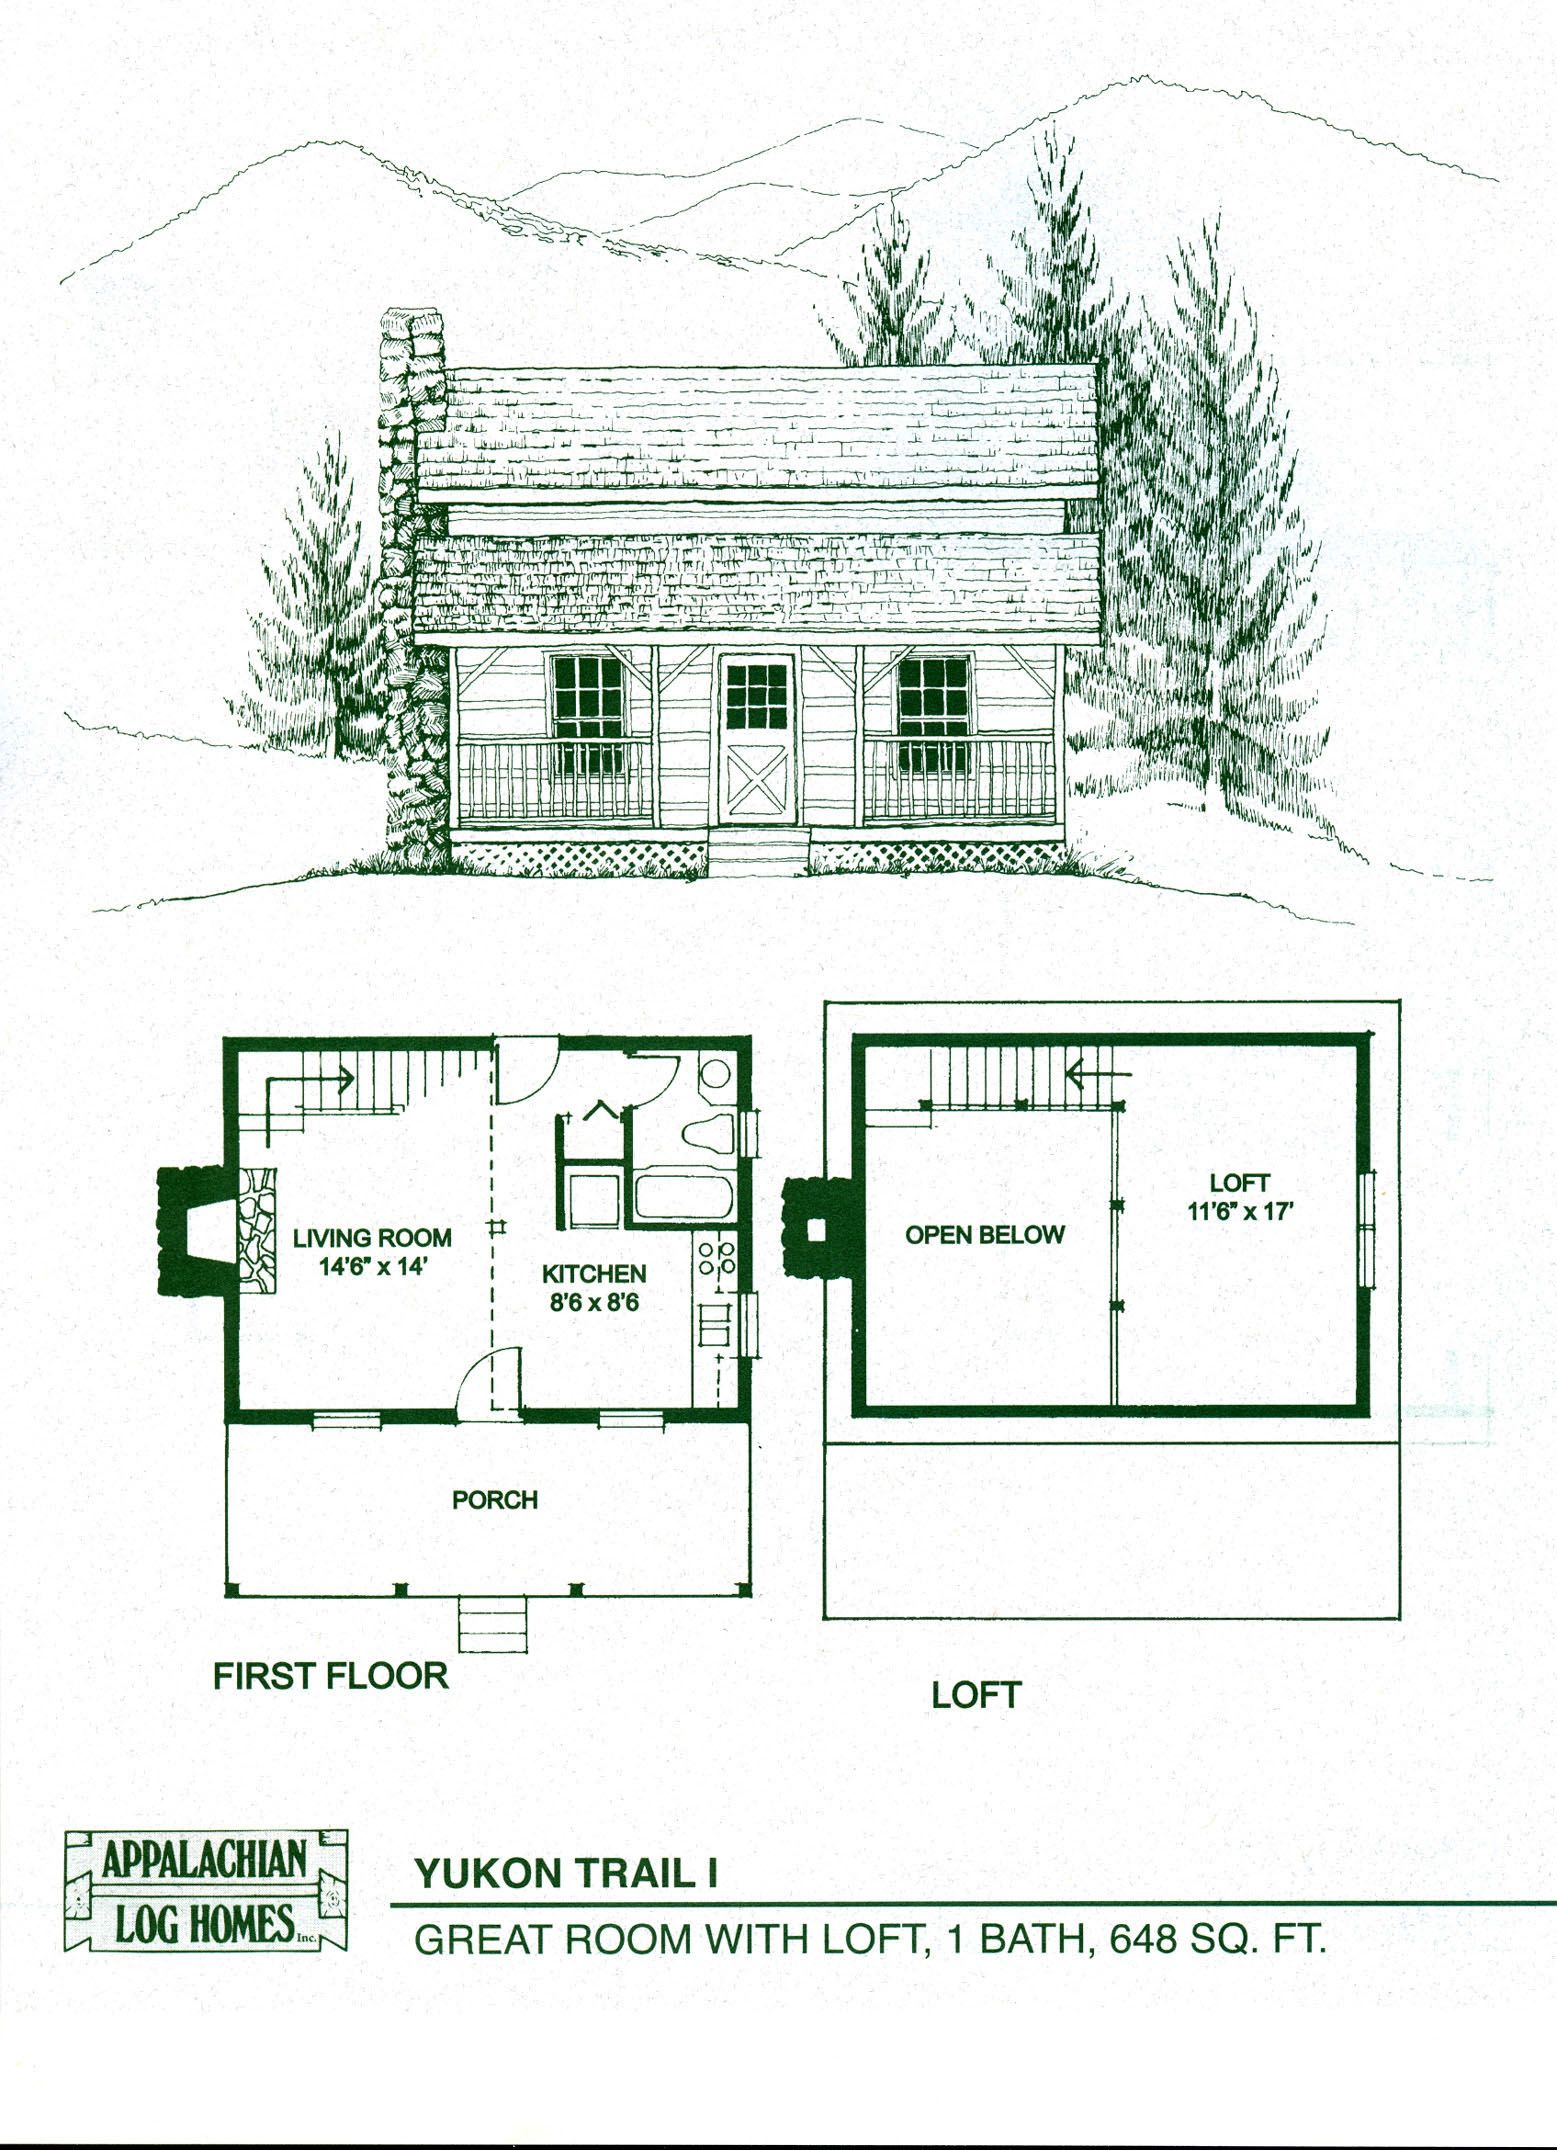 Log home floor plans log cabin kits appalachian log for Cottage designs and floor plans